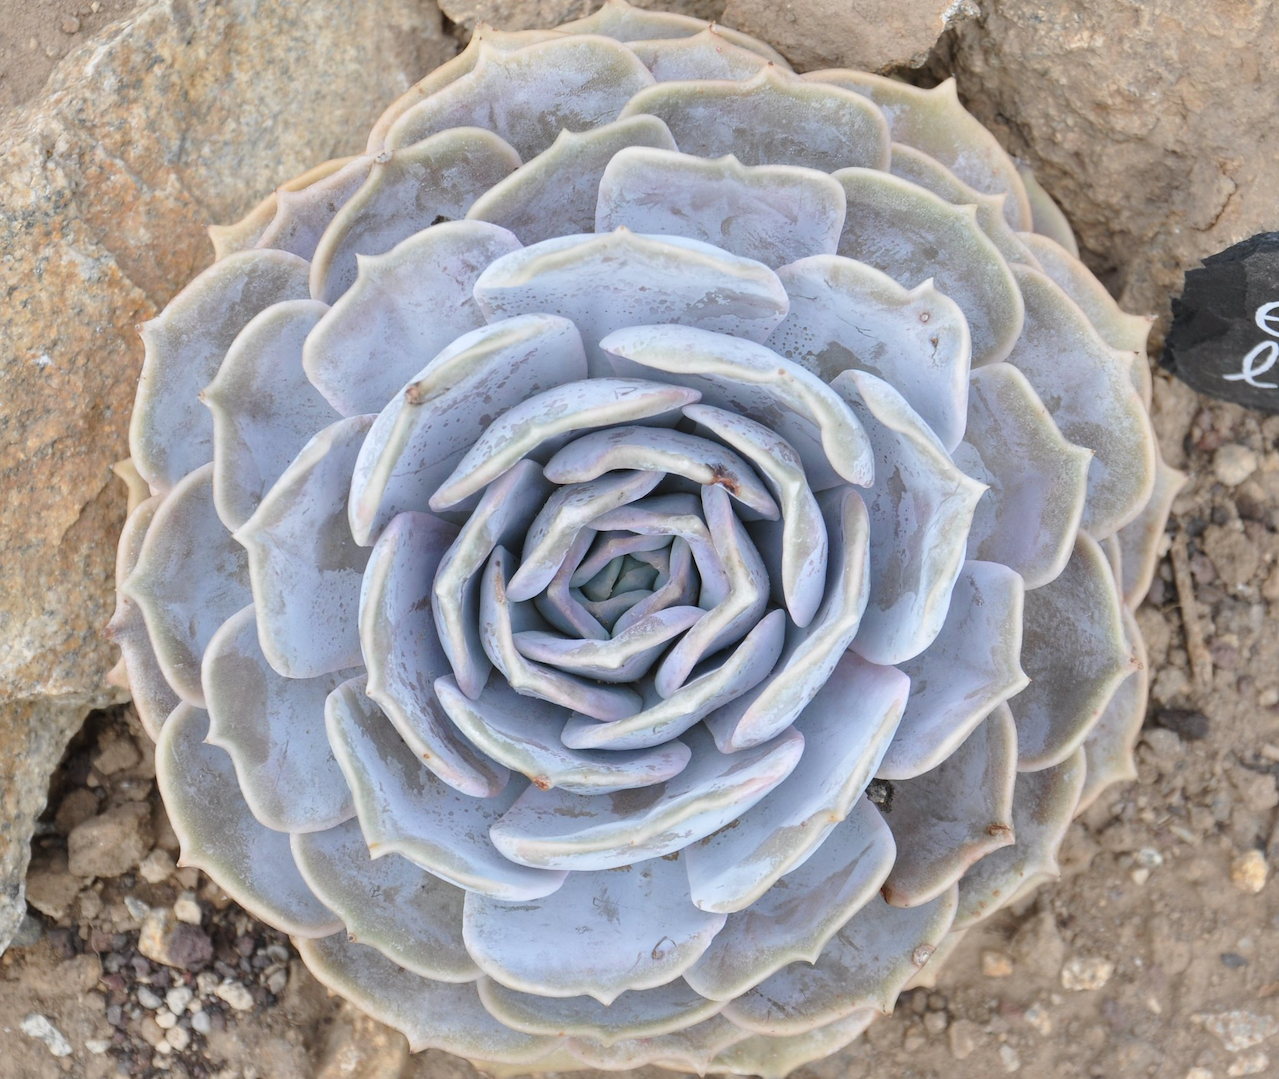 Ghost echeveria with silvery leaves